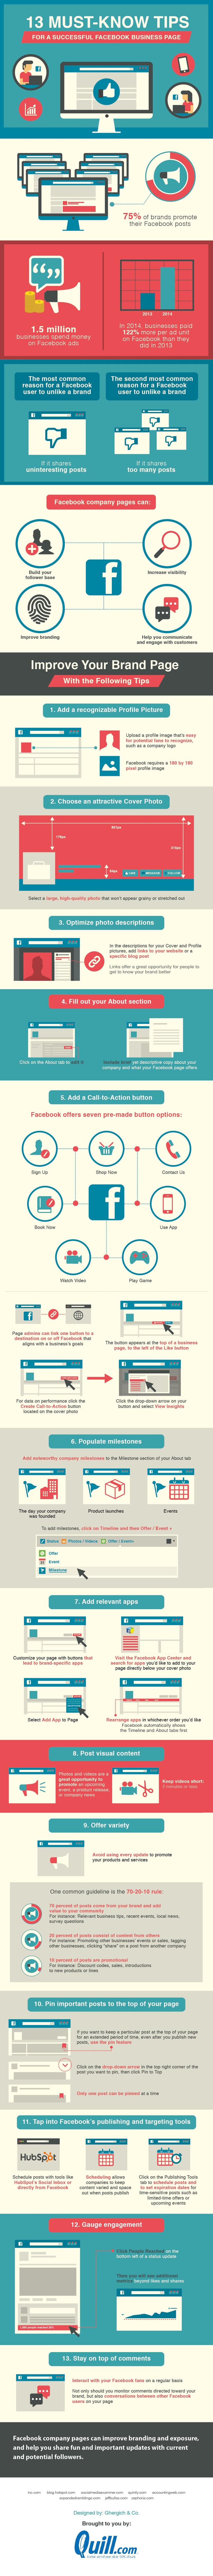 13 Must-Know Tips For A Successful Facebook Page [Infographic]